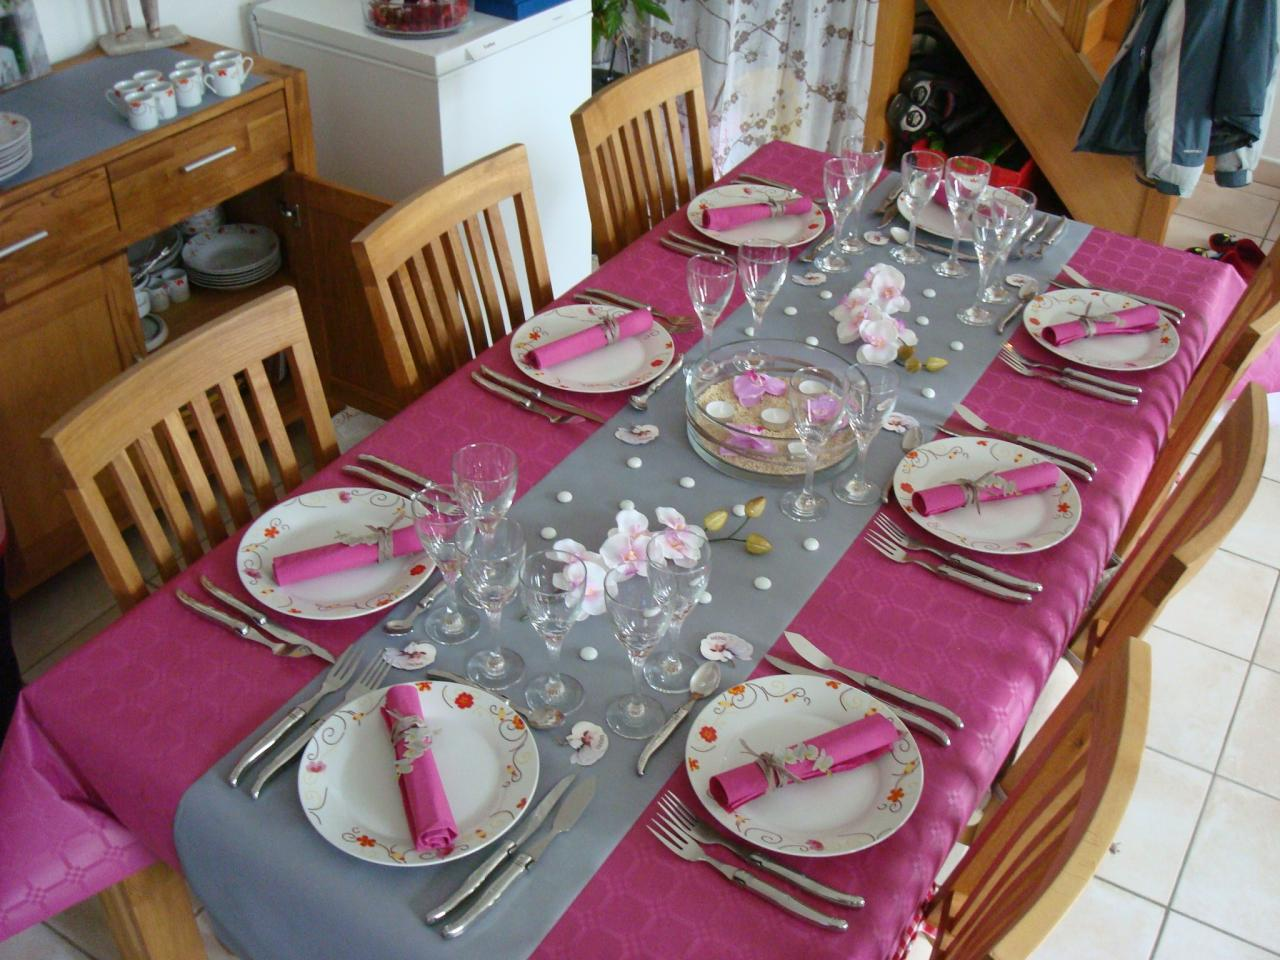 D coration maison anniversaire - Idee de deco de table ...